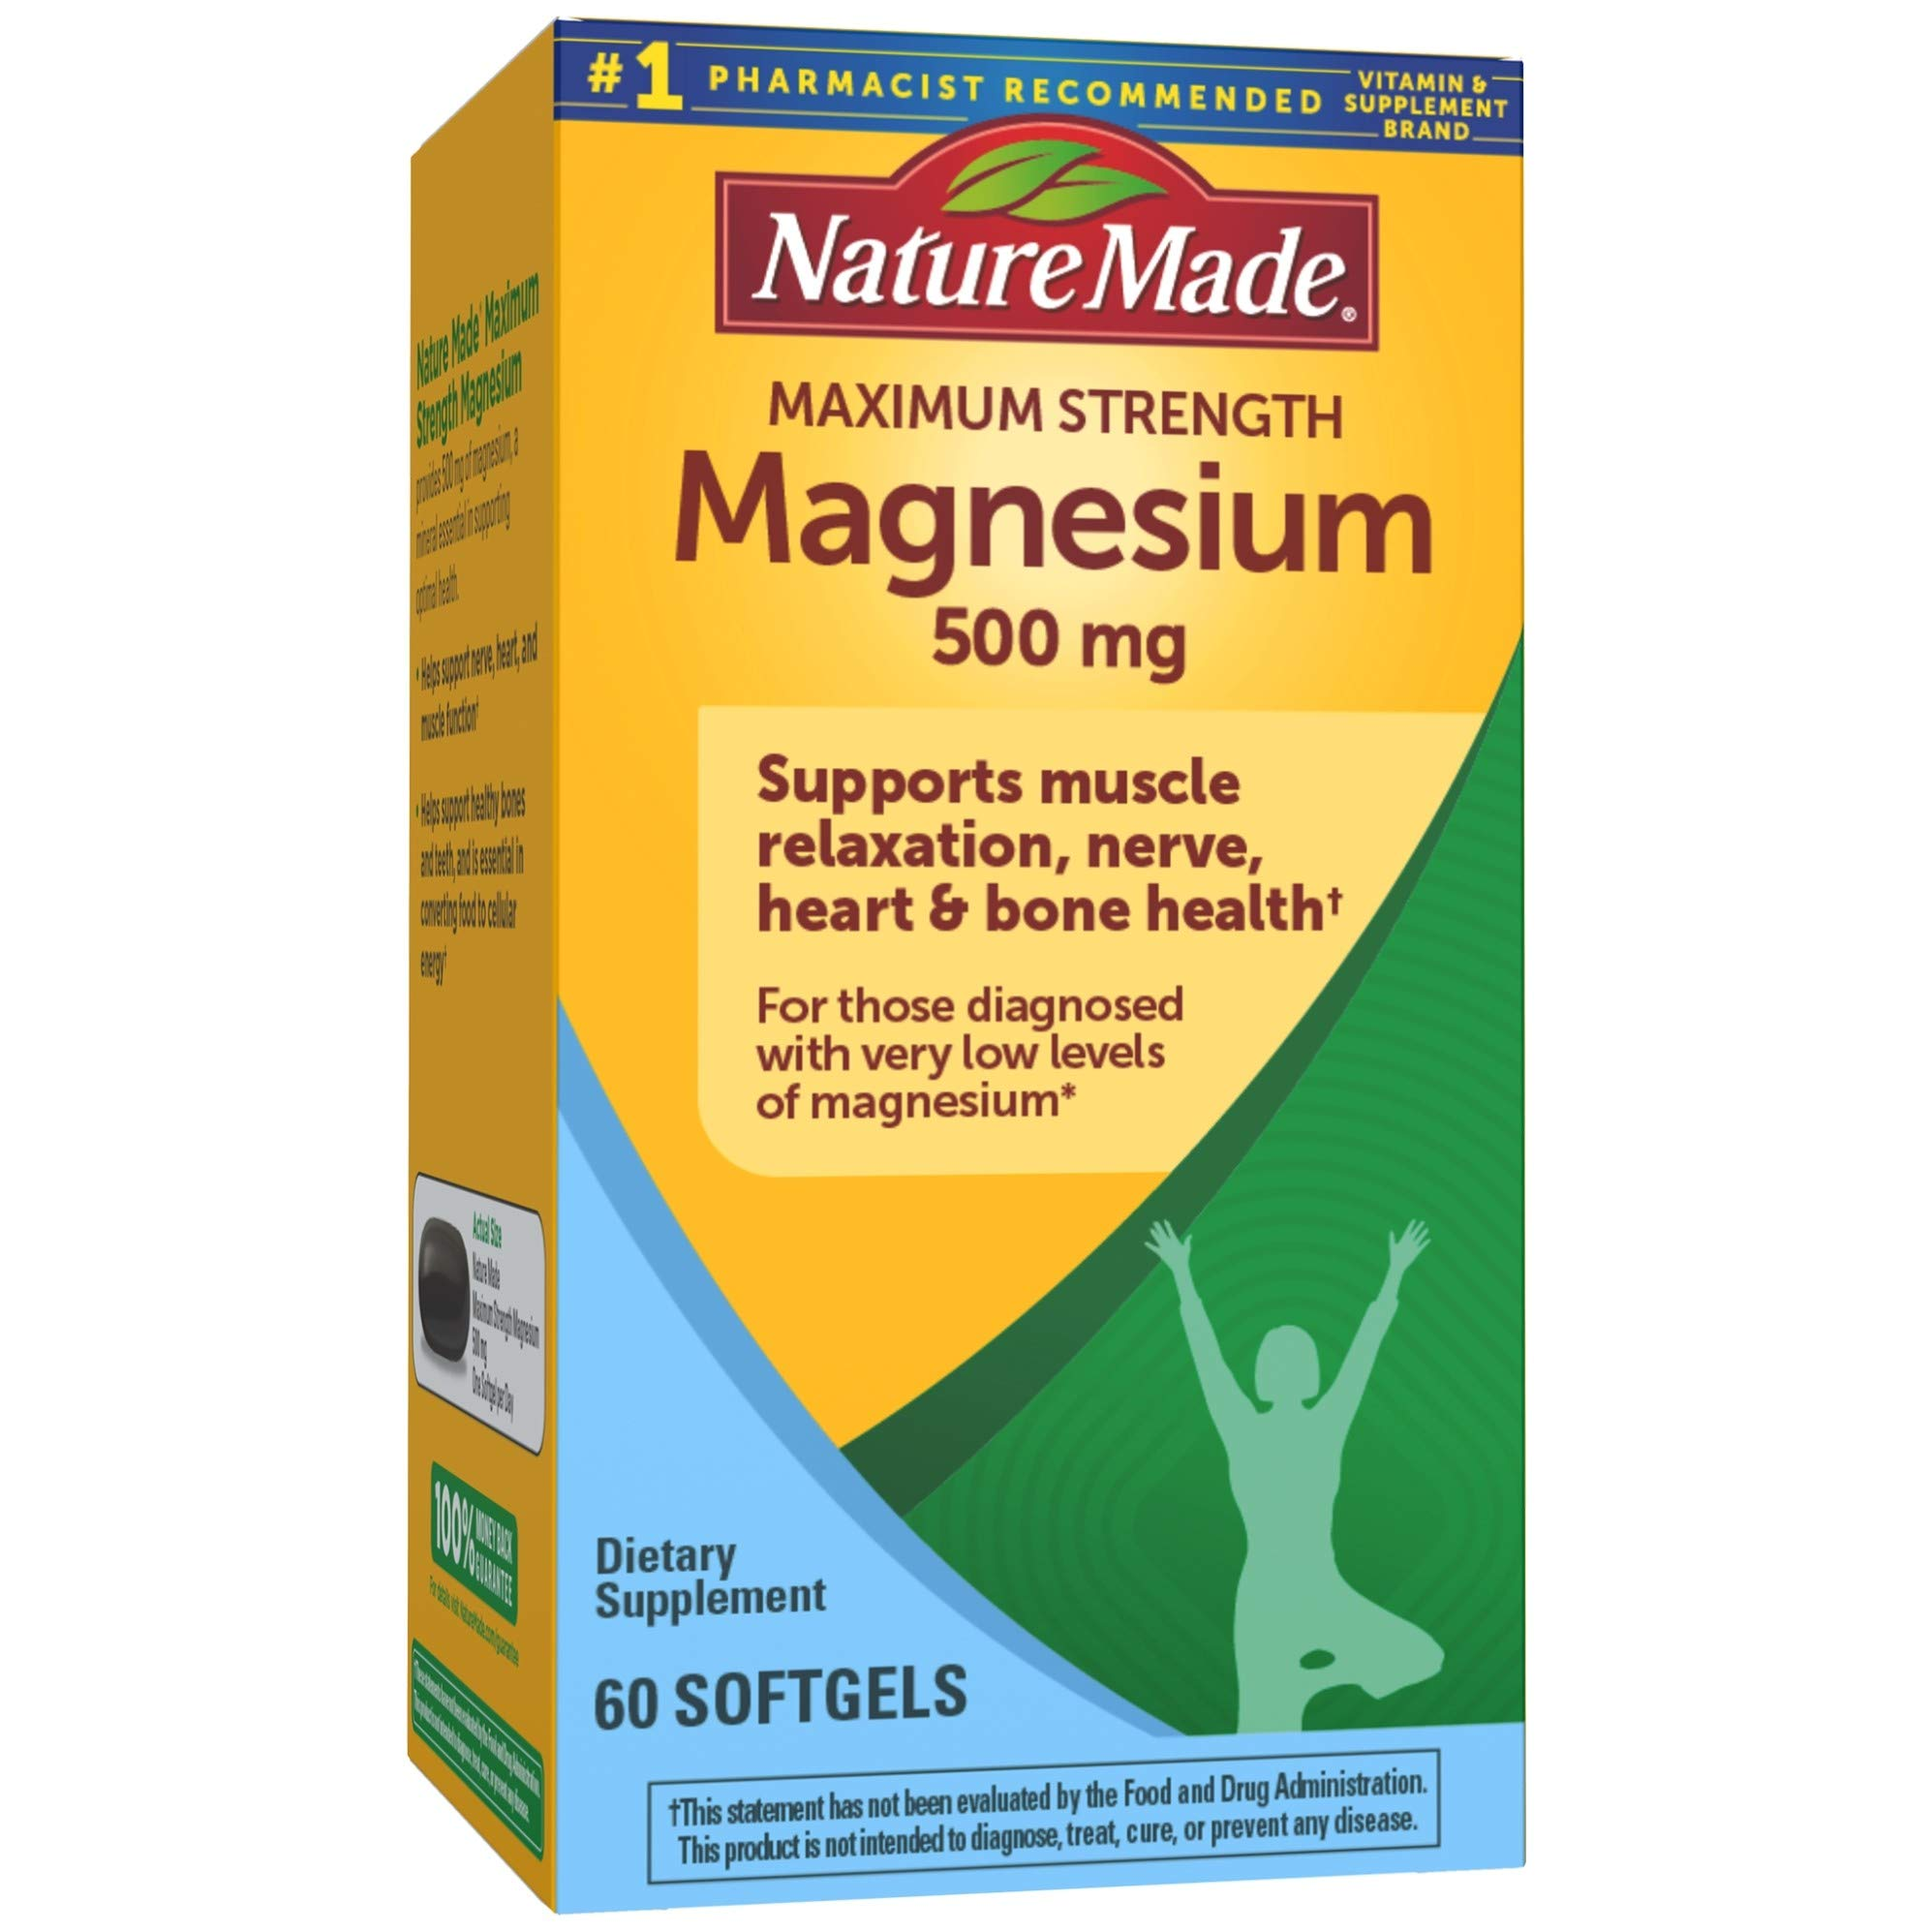 Nature Made Maximum Strength Magnesium Oxide 500 mg Softgels, 60 Count for Nutritional Support